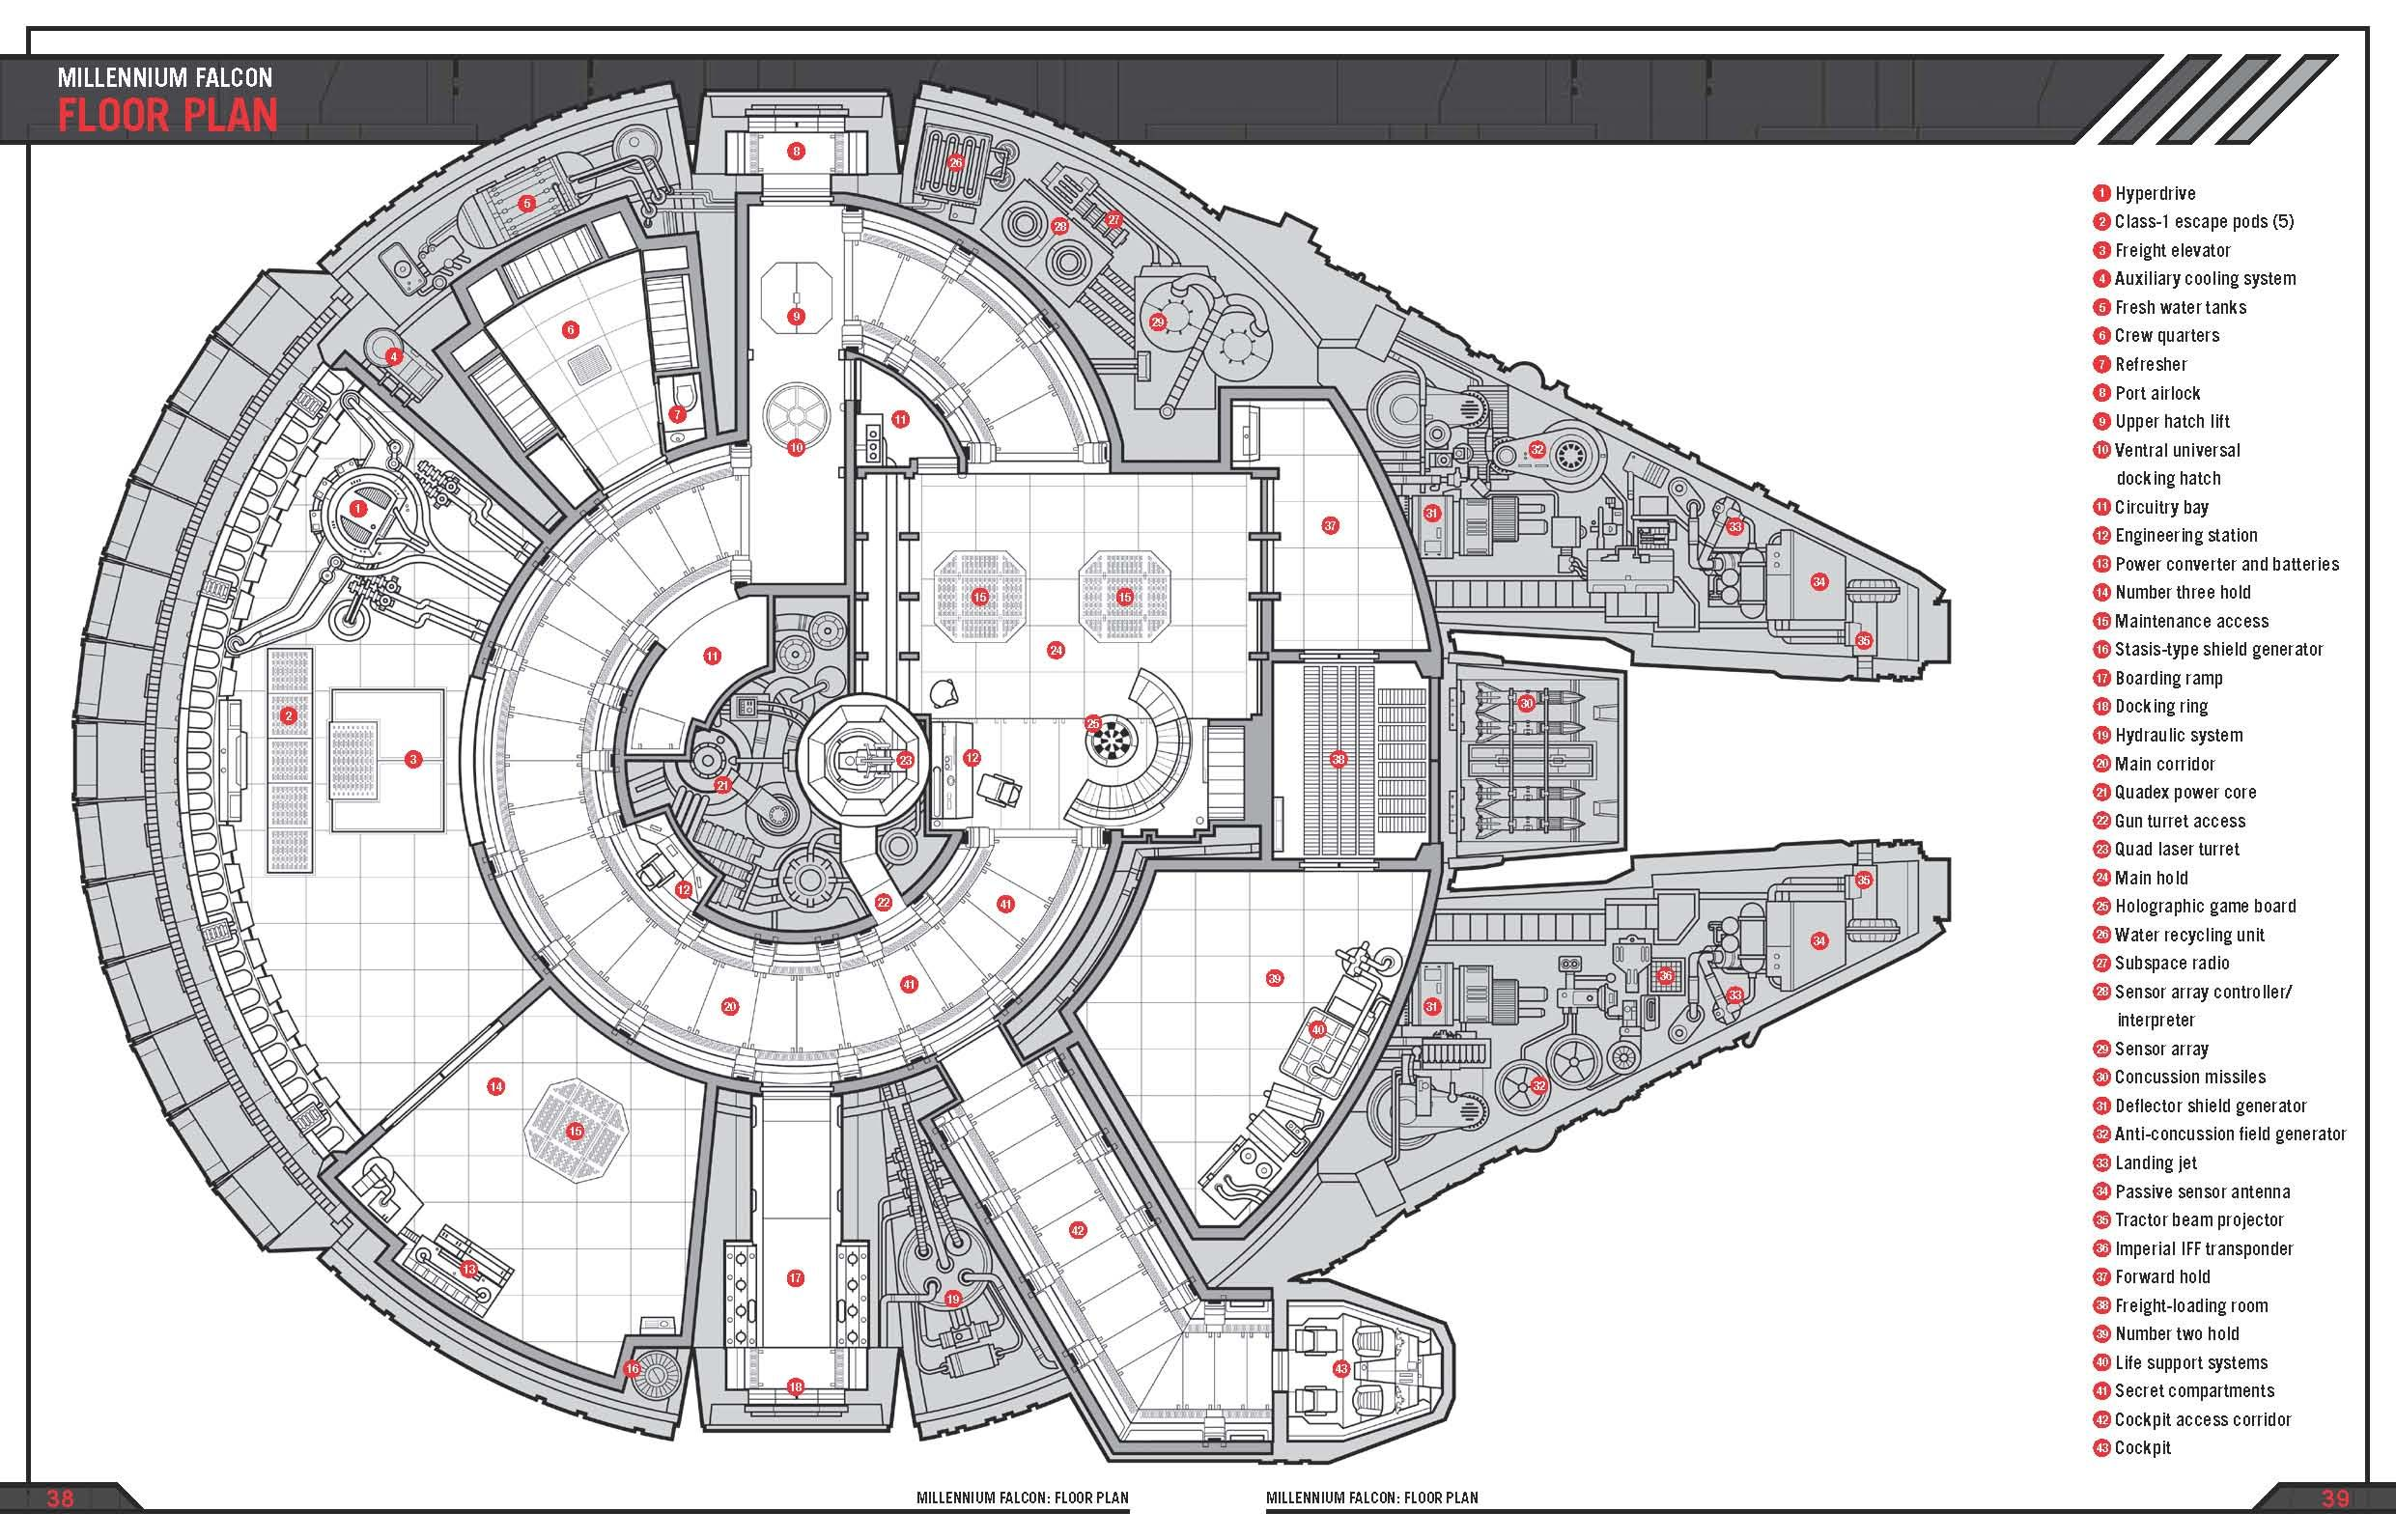 A Floor Plan Of The Millennium Falcon From Star Wars From